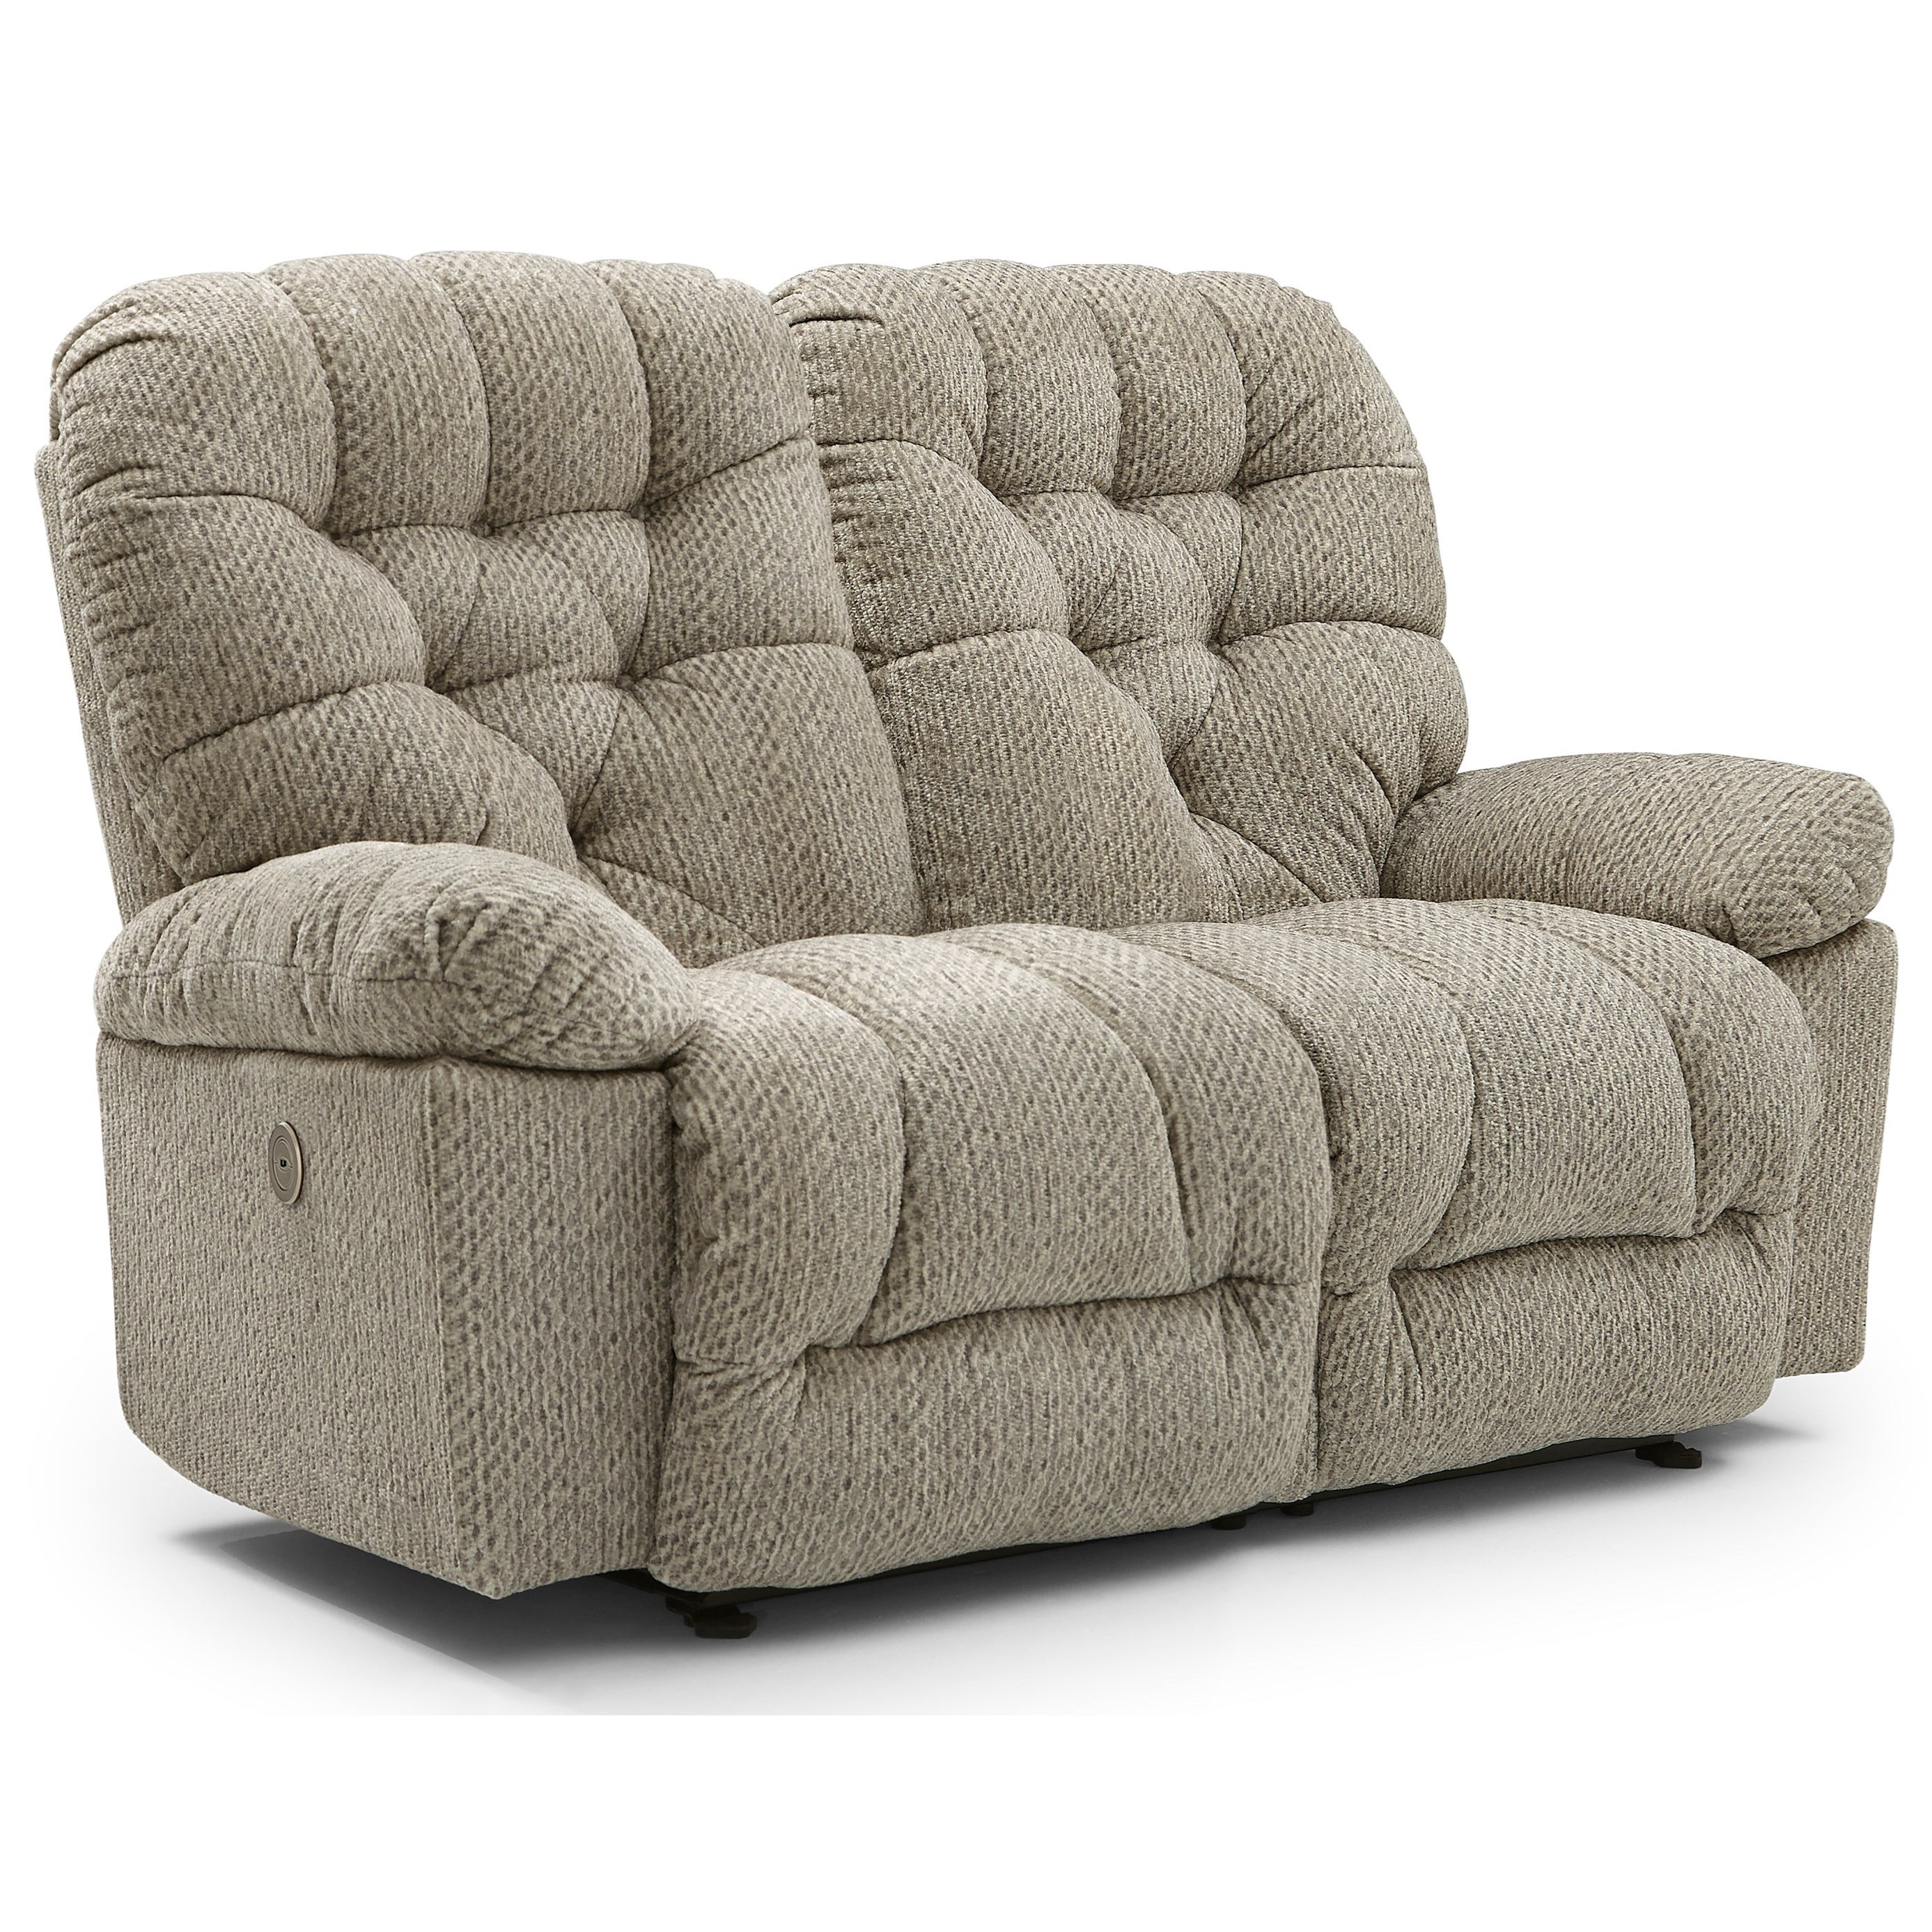 Bolt Power Space Saving Loveseat by Best Home Furnishings at Powell's Furniture and Mattress